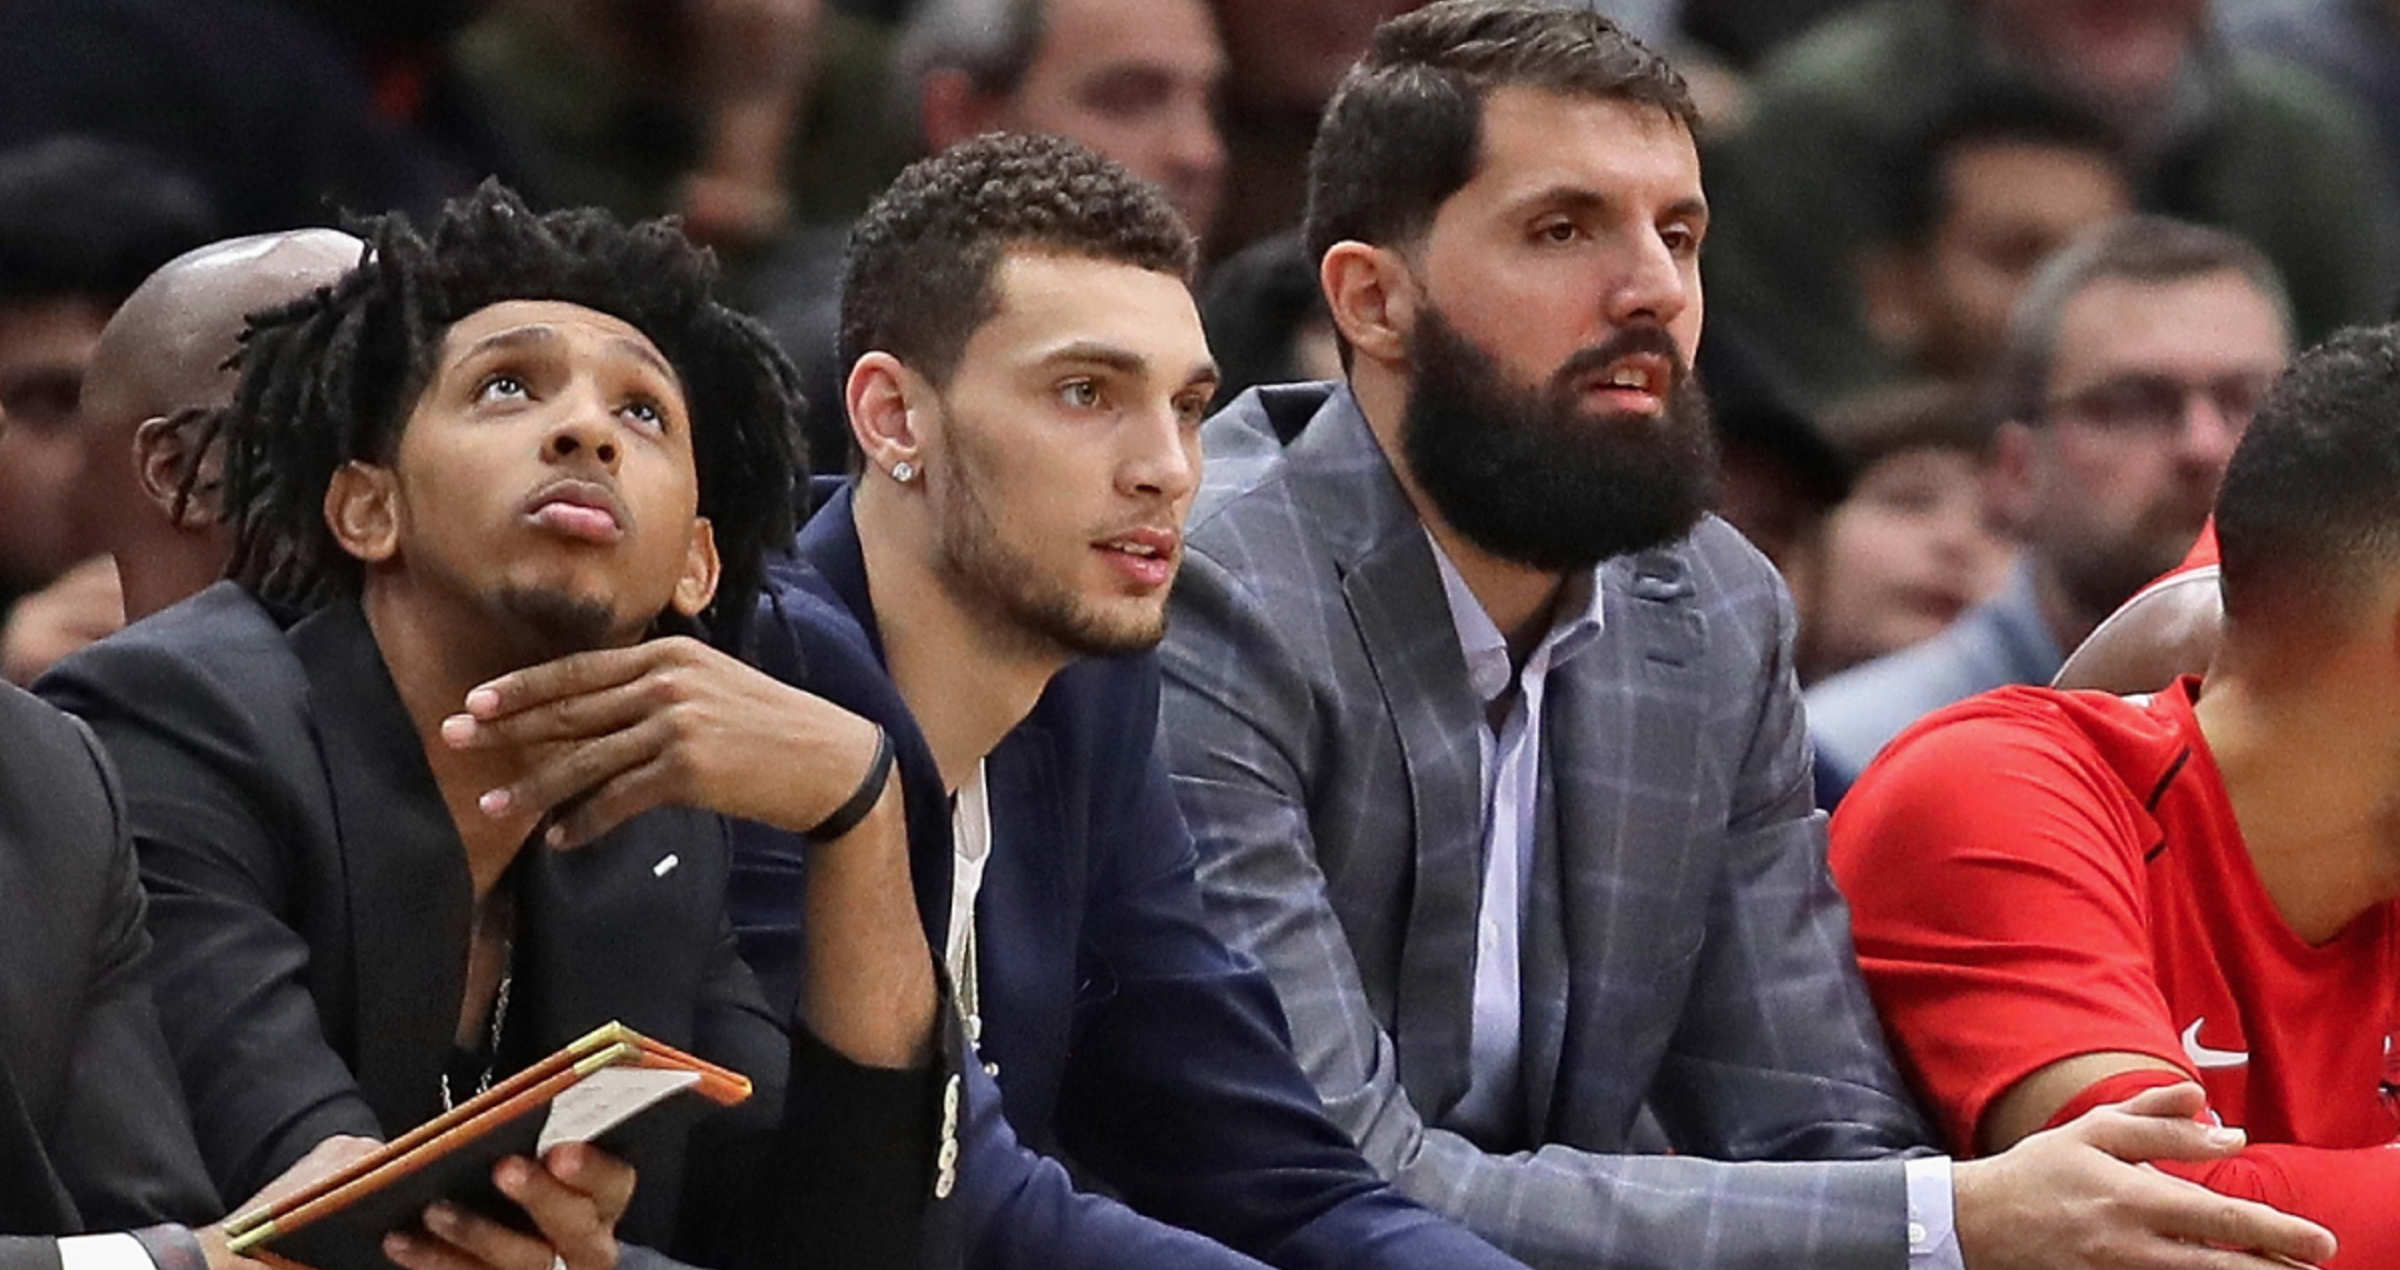 Injured Chicago Bulls players Cameron Payne, Zach LaVine and Nikola Mirotic sit on the bench during a game against the Phoenix Suns at the United Center on November 28, 2017 in Chicago, Illinois.